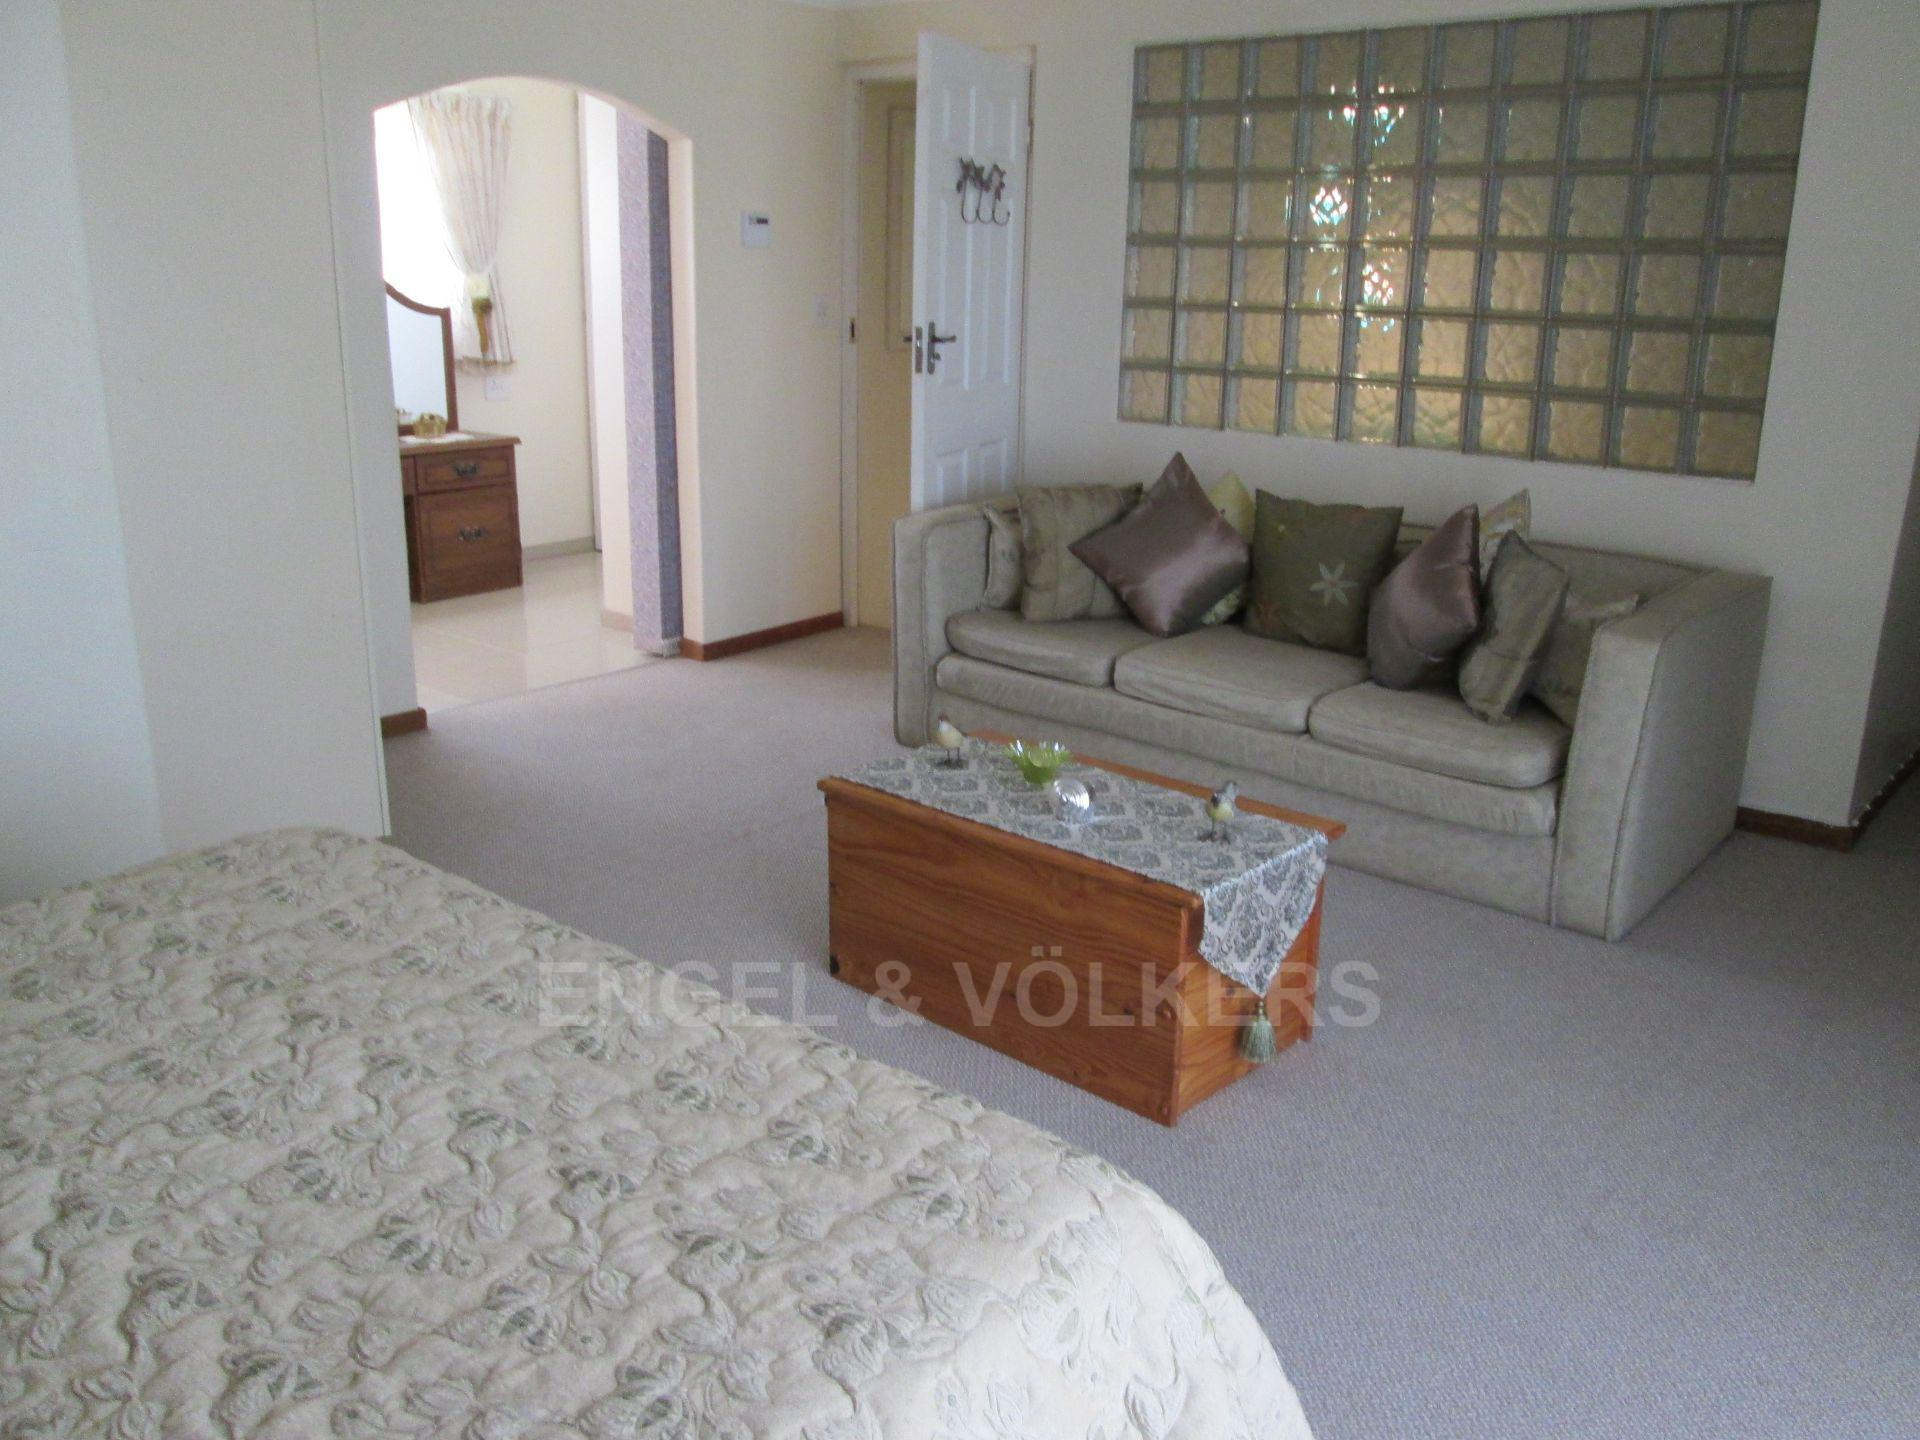 Southbroom property for sale. Ref No: 13502158. Picture no 9